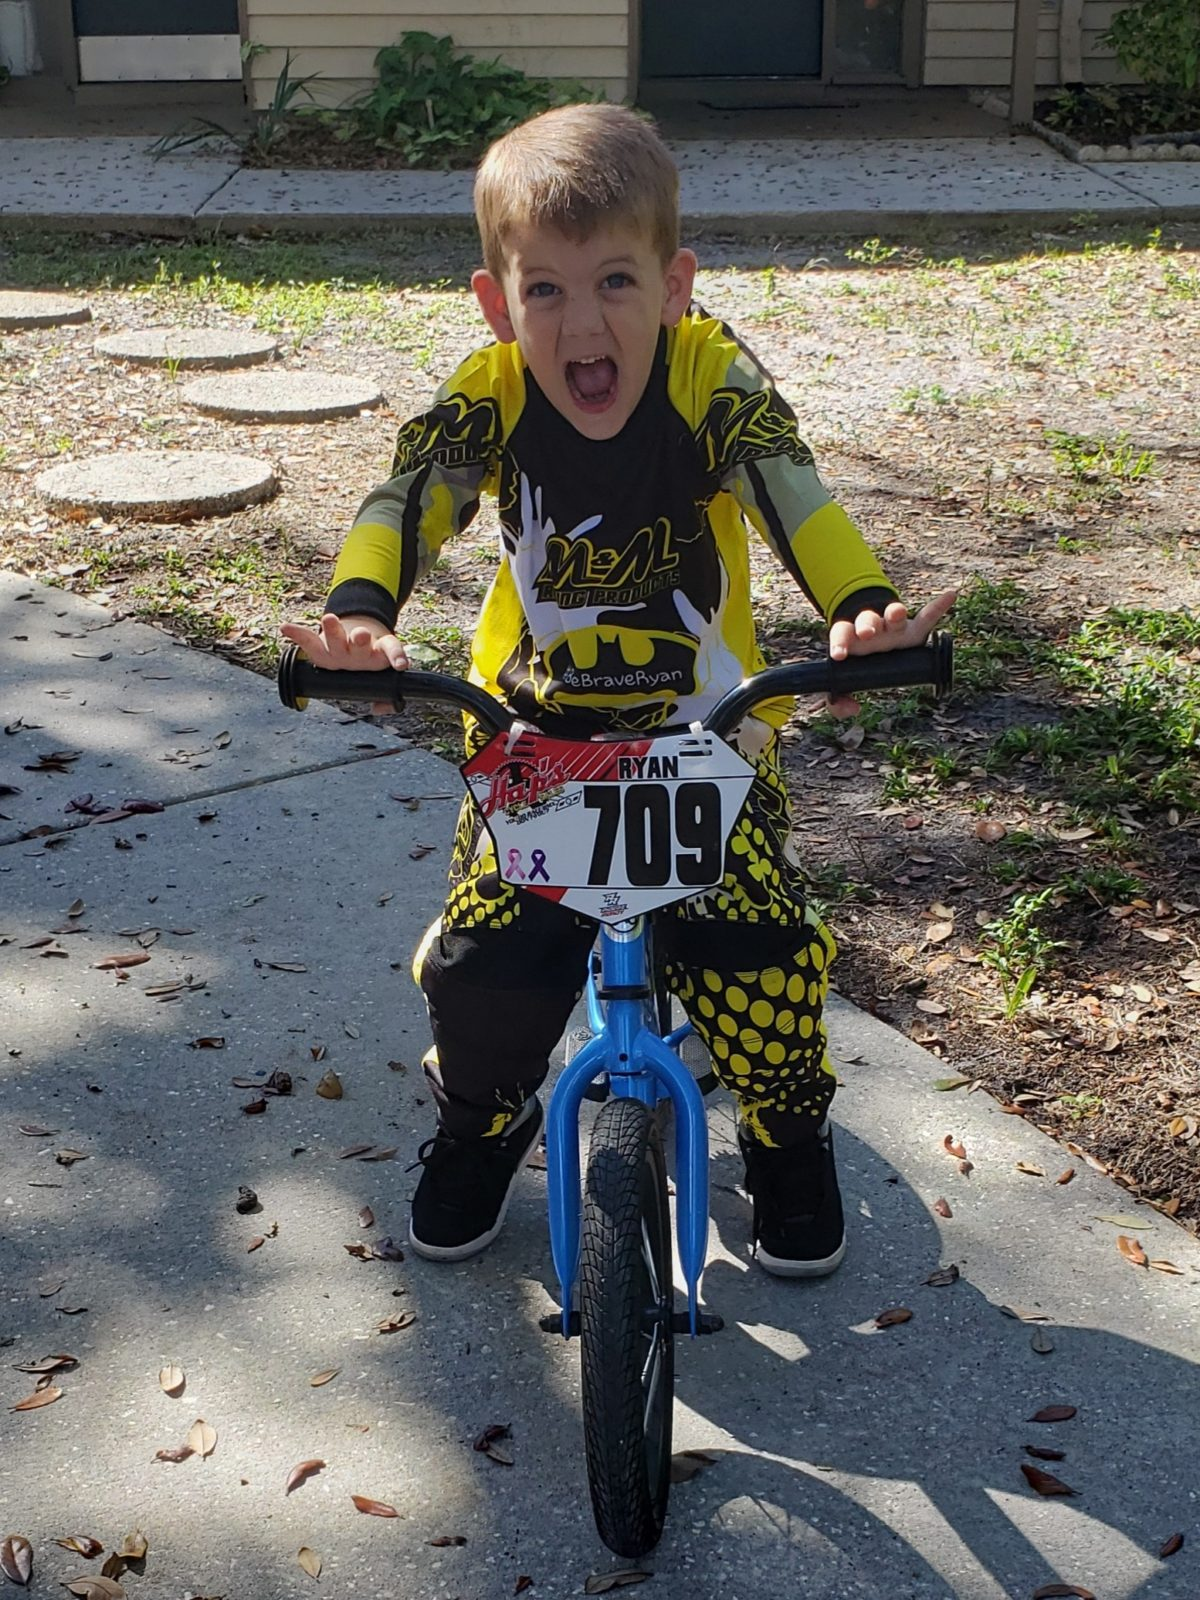 Ryan's Story – A Boy and His Bike